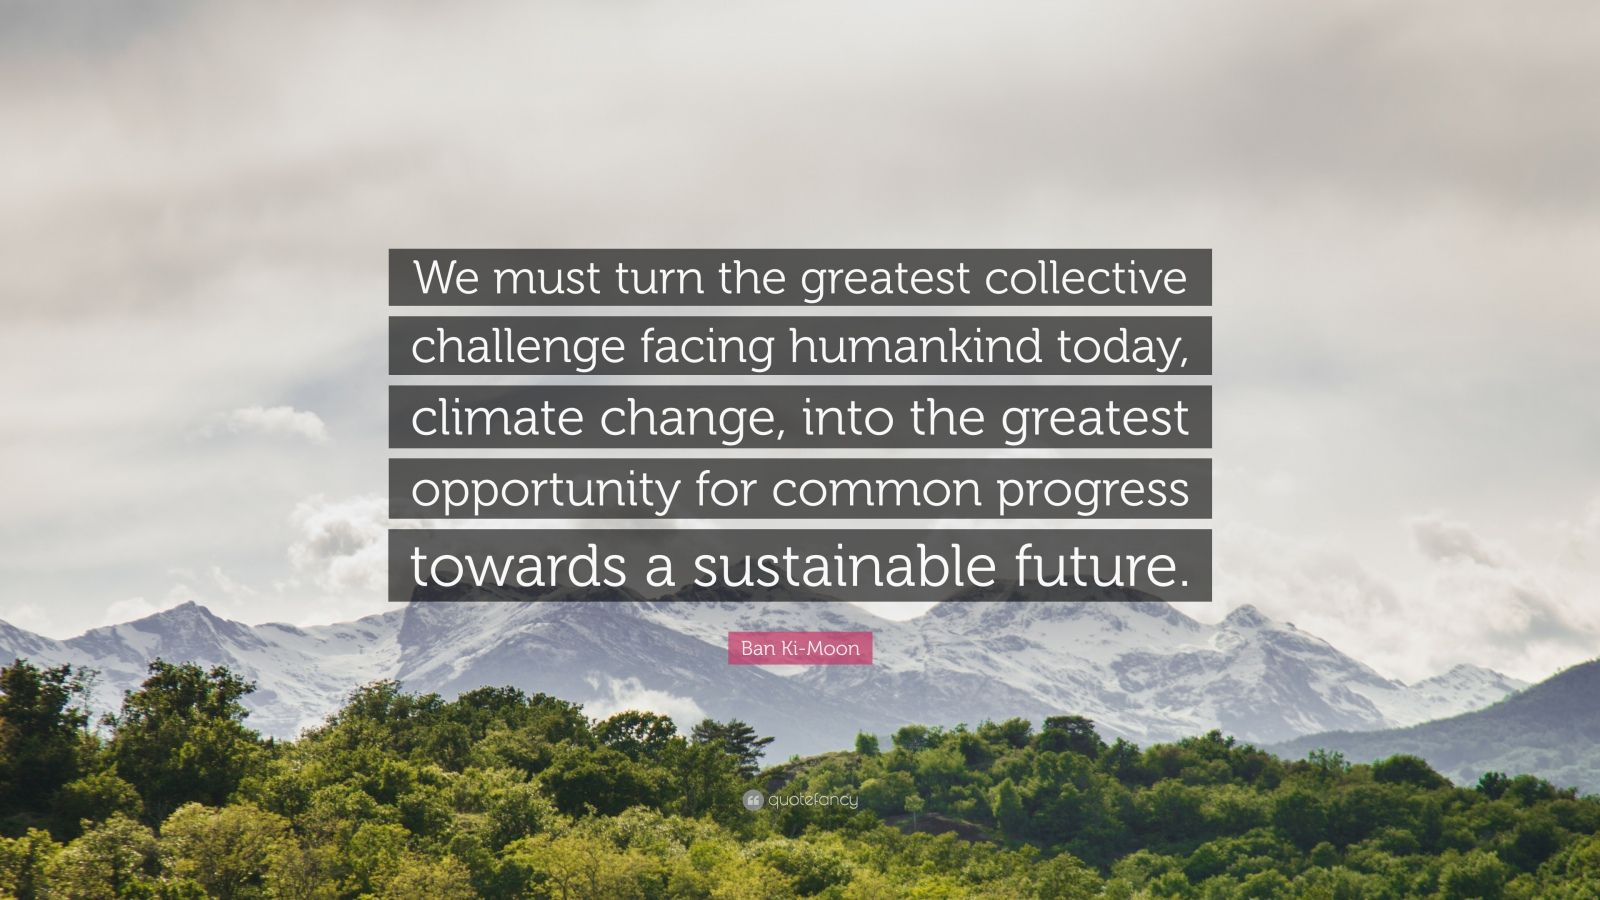 """Ban Ki-Moon Quote: """"We must turn the greatest collective challenge facing humankind today, climate change, into the greatest opportunity for common progress towards a sustainable future."""""""